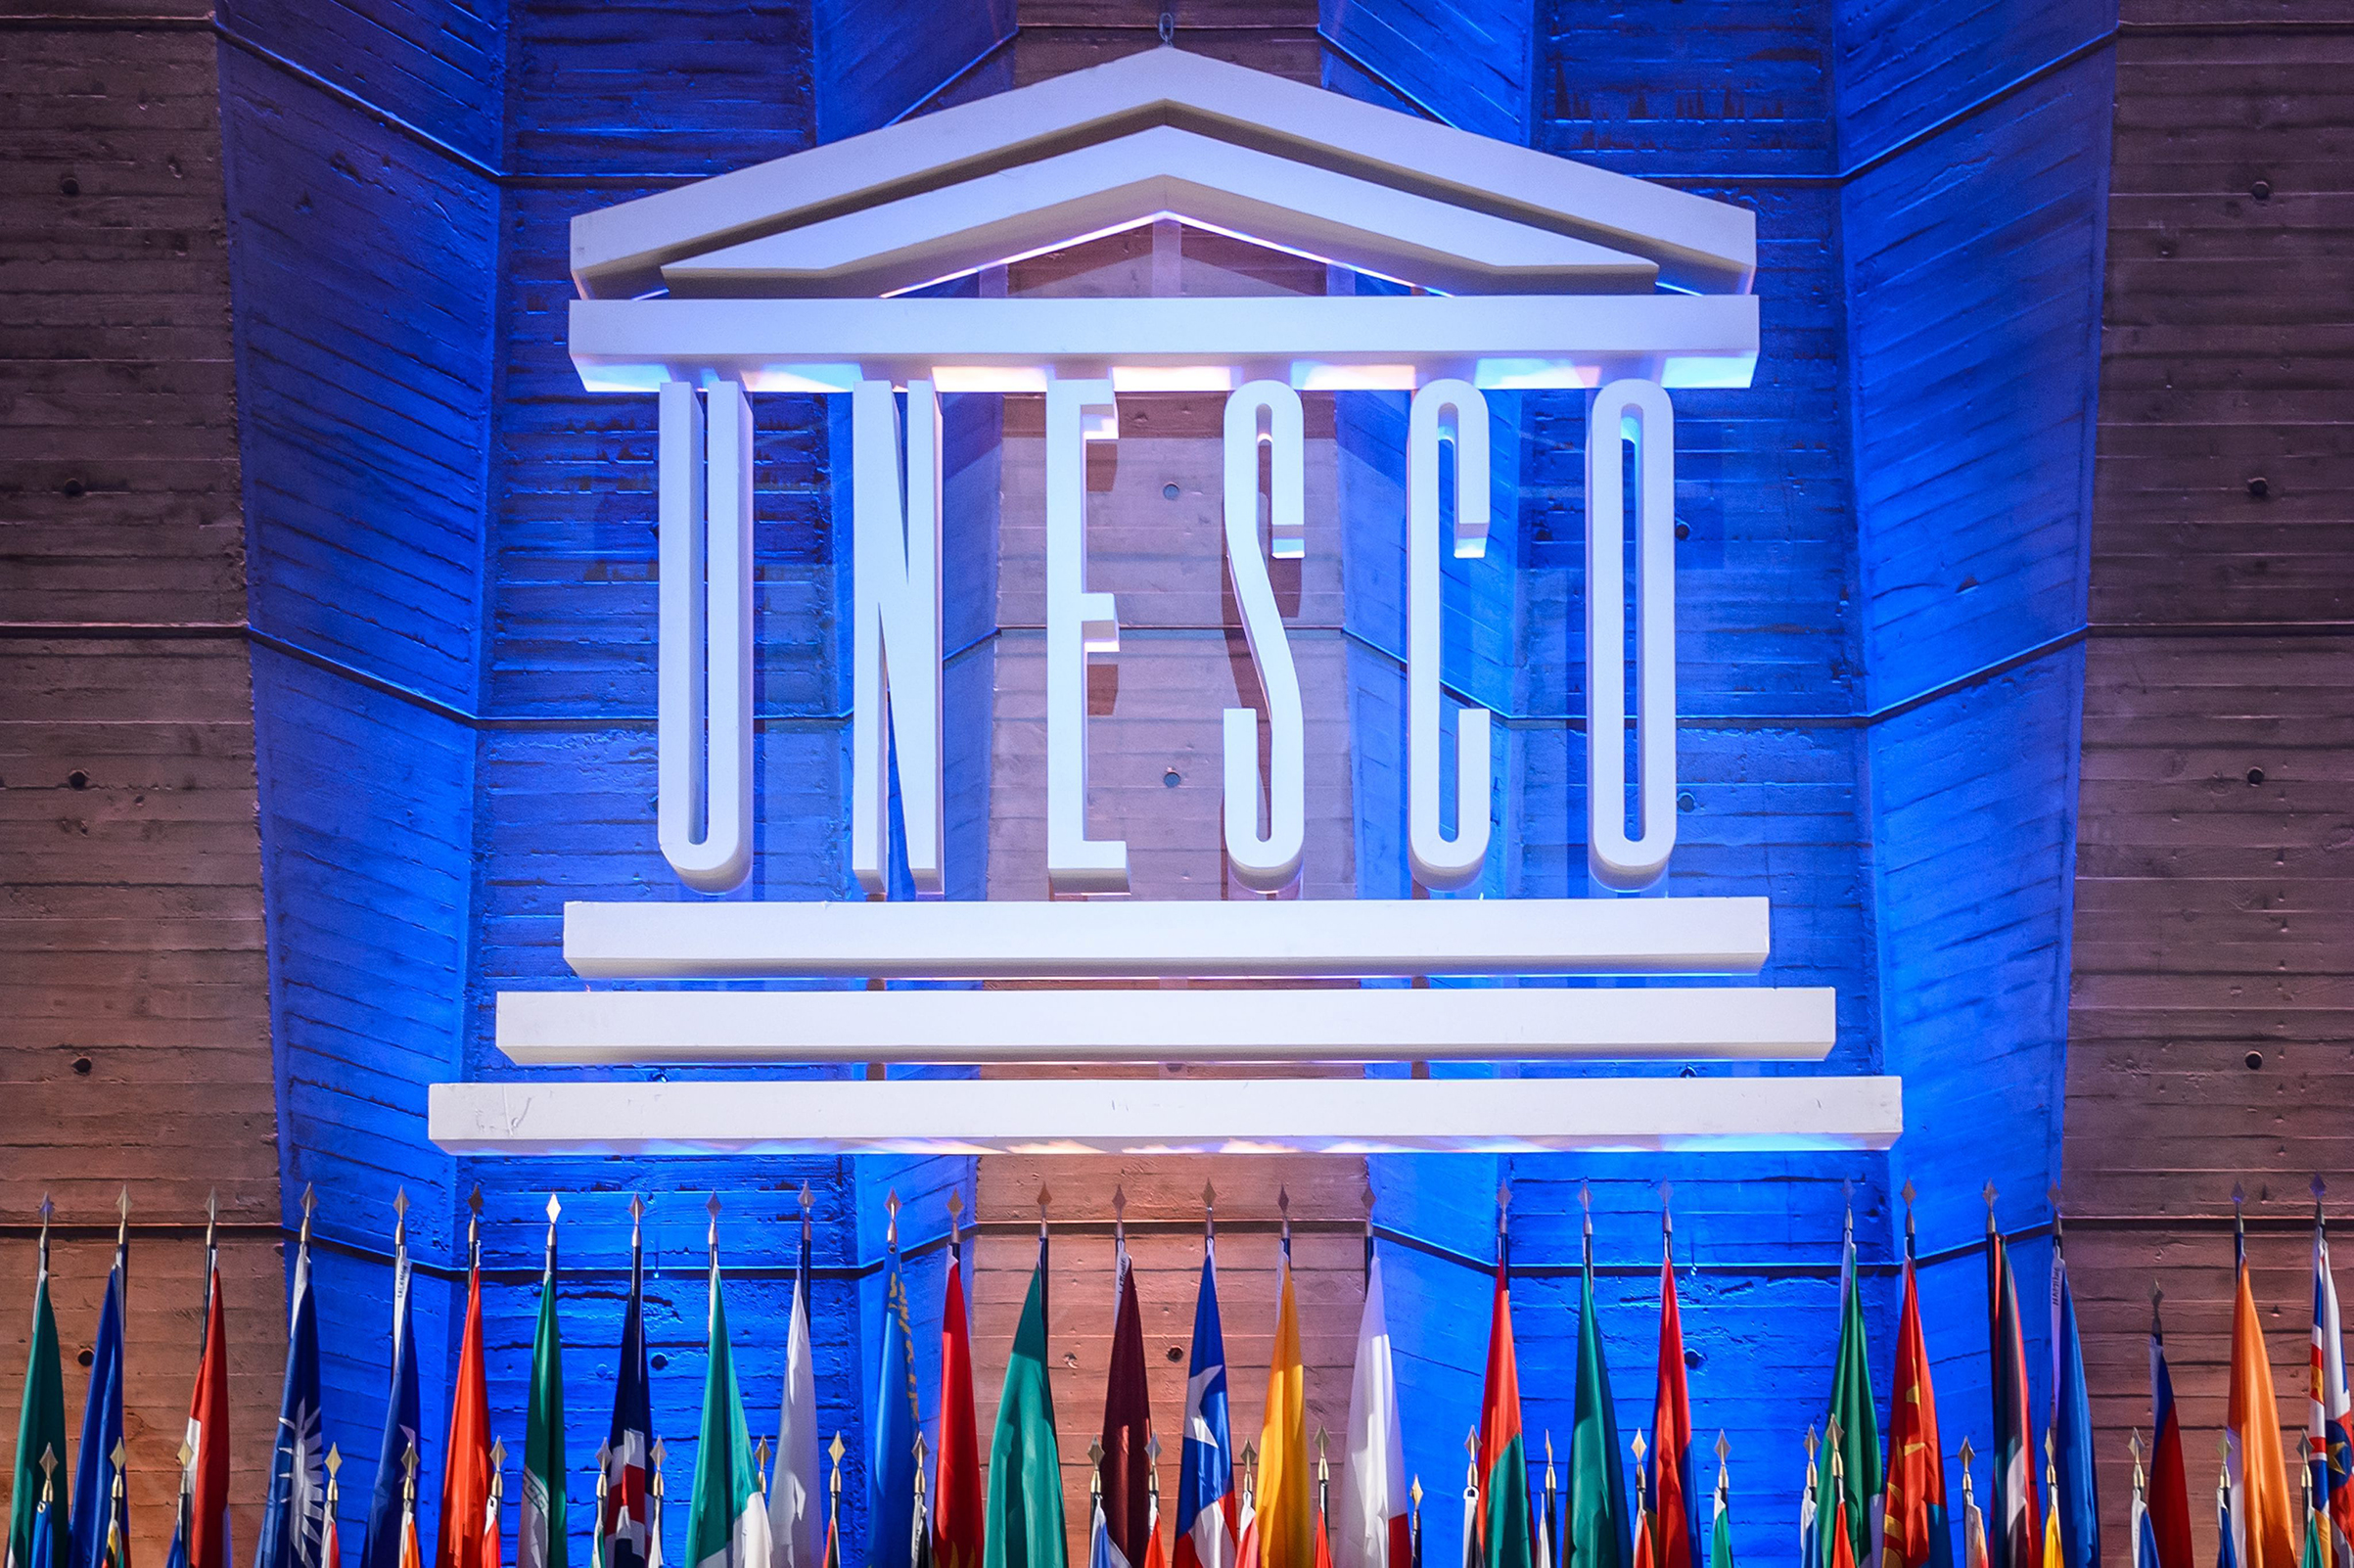 The United Nations Educational Scientific and Cultural Organization Headquarters in Paris, Nov. 9, 2015 during the 38th Session of the Unesco General Conference.